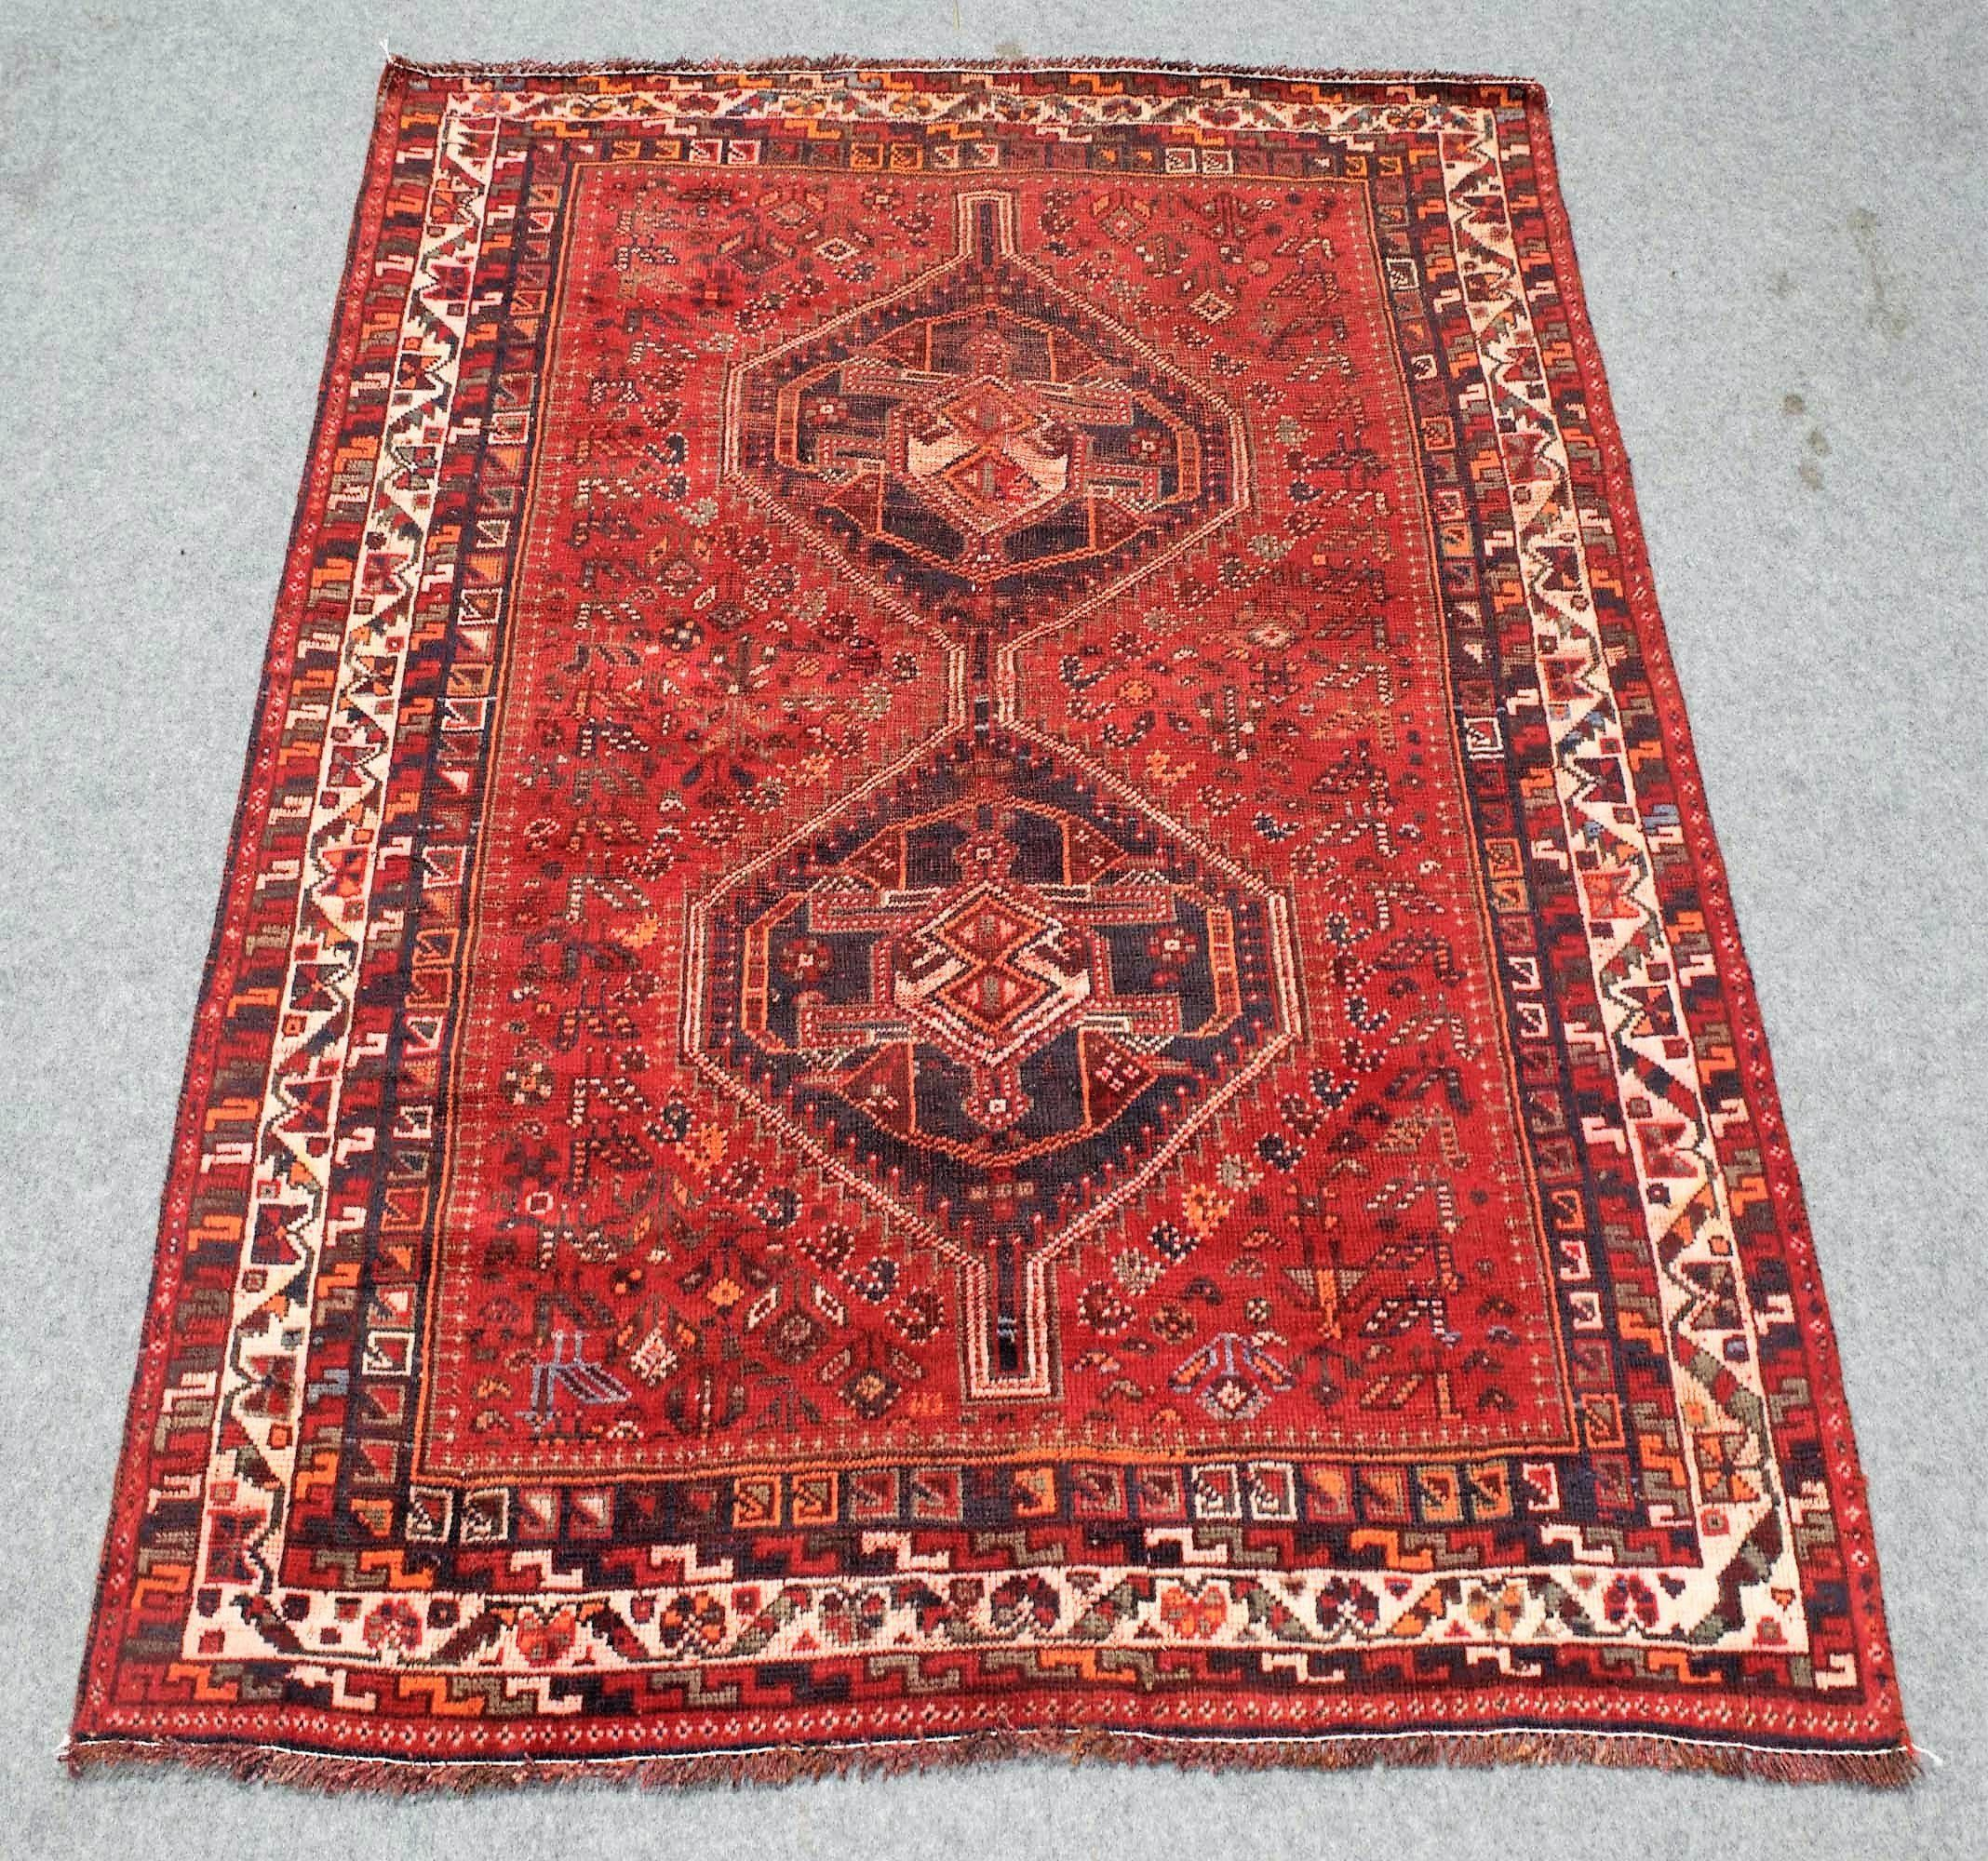 5x6 Elegant Vintage Turkish Shiraz Hand Knotted Wool Area Rug Worn Antique With Images Wool Area Rugs Rugs Area Rugs